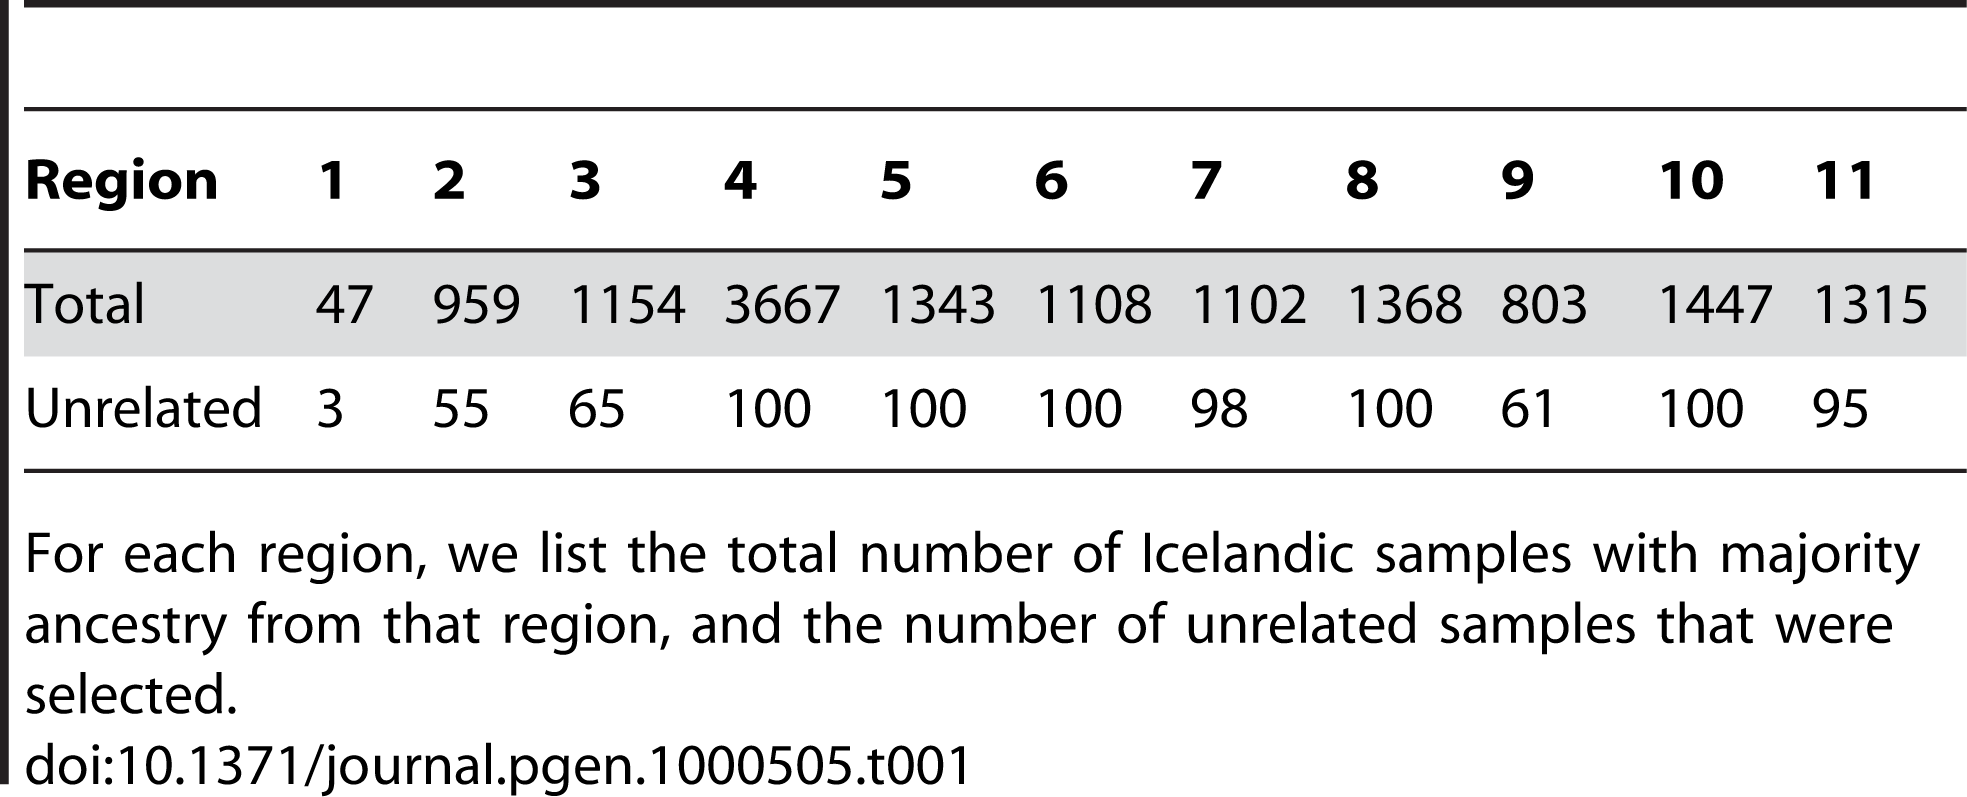 Data for Icelandic samples with majority ancestry from each of the 11 regions.